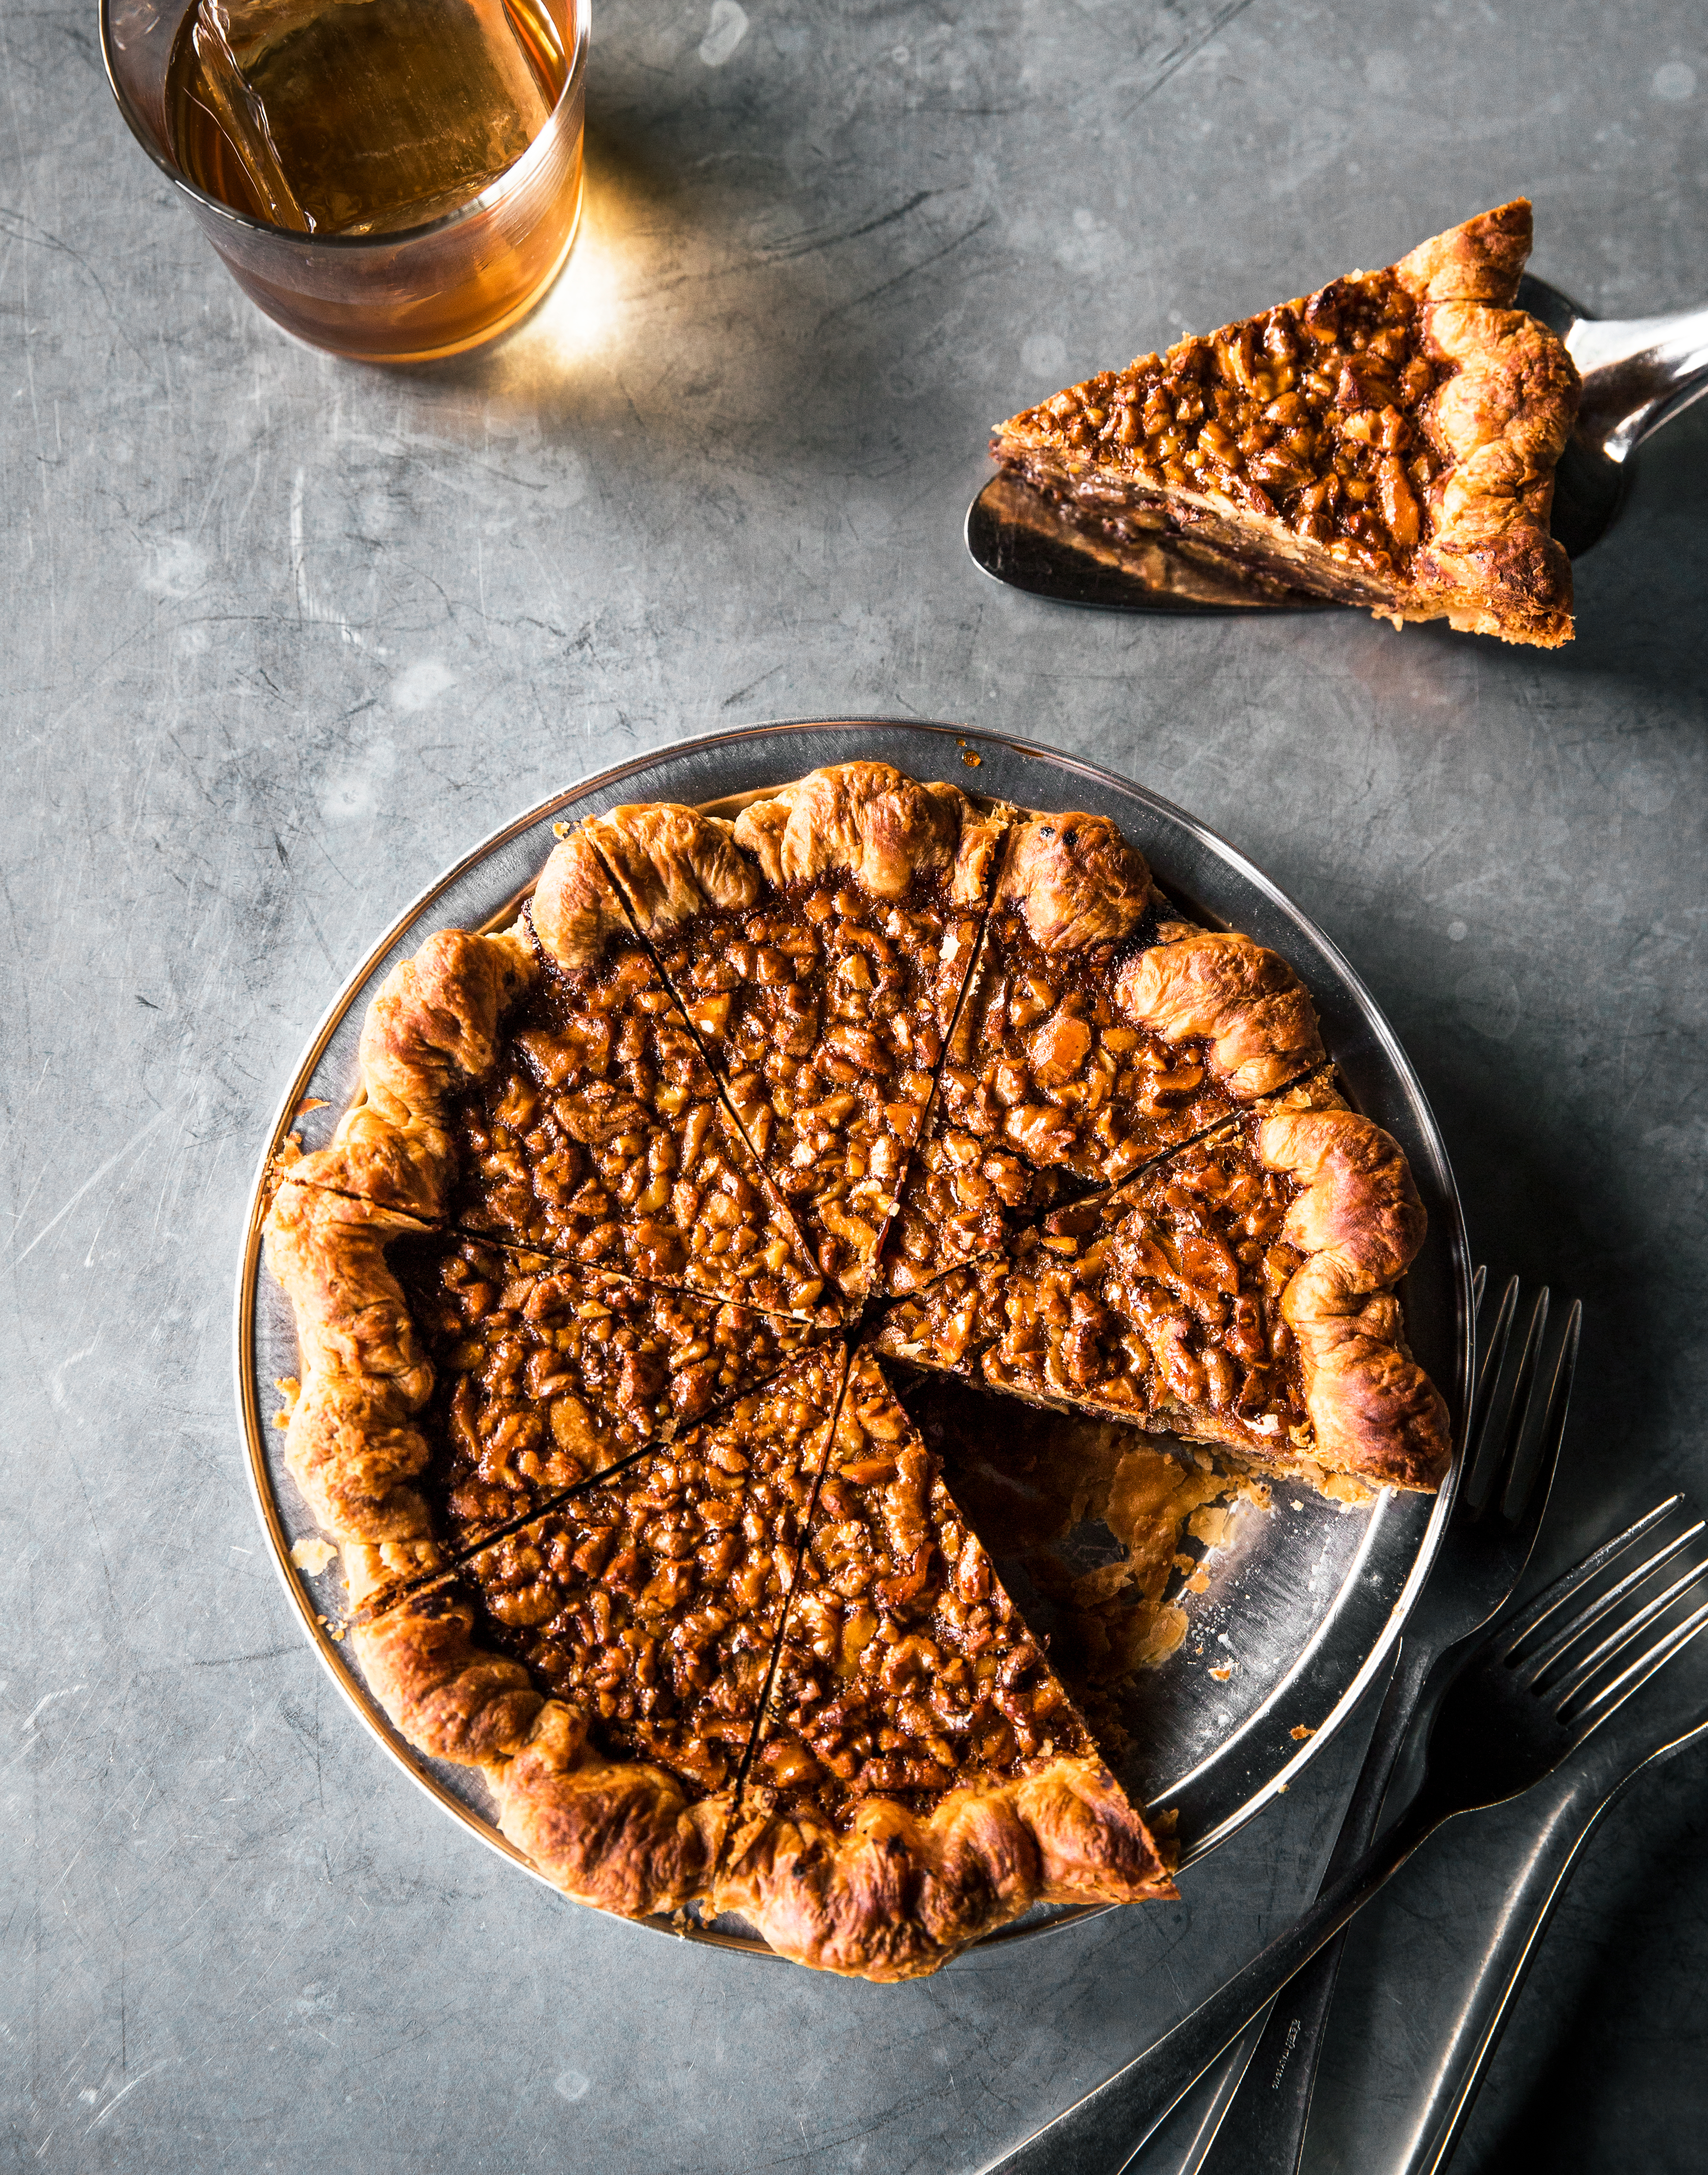 Thanksgiving Pie Recipes That Aren't All Pumpkin - Sunset Magazine